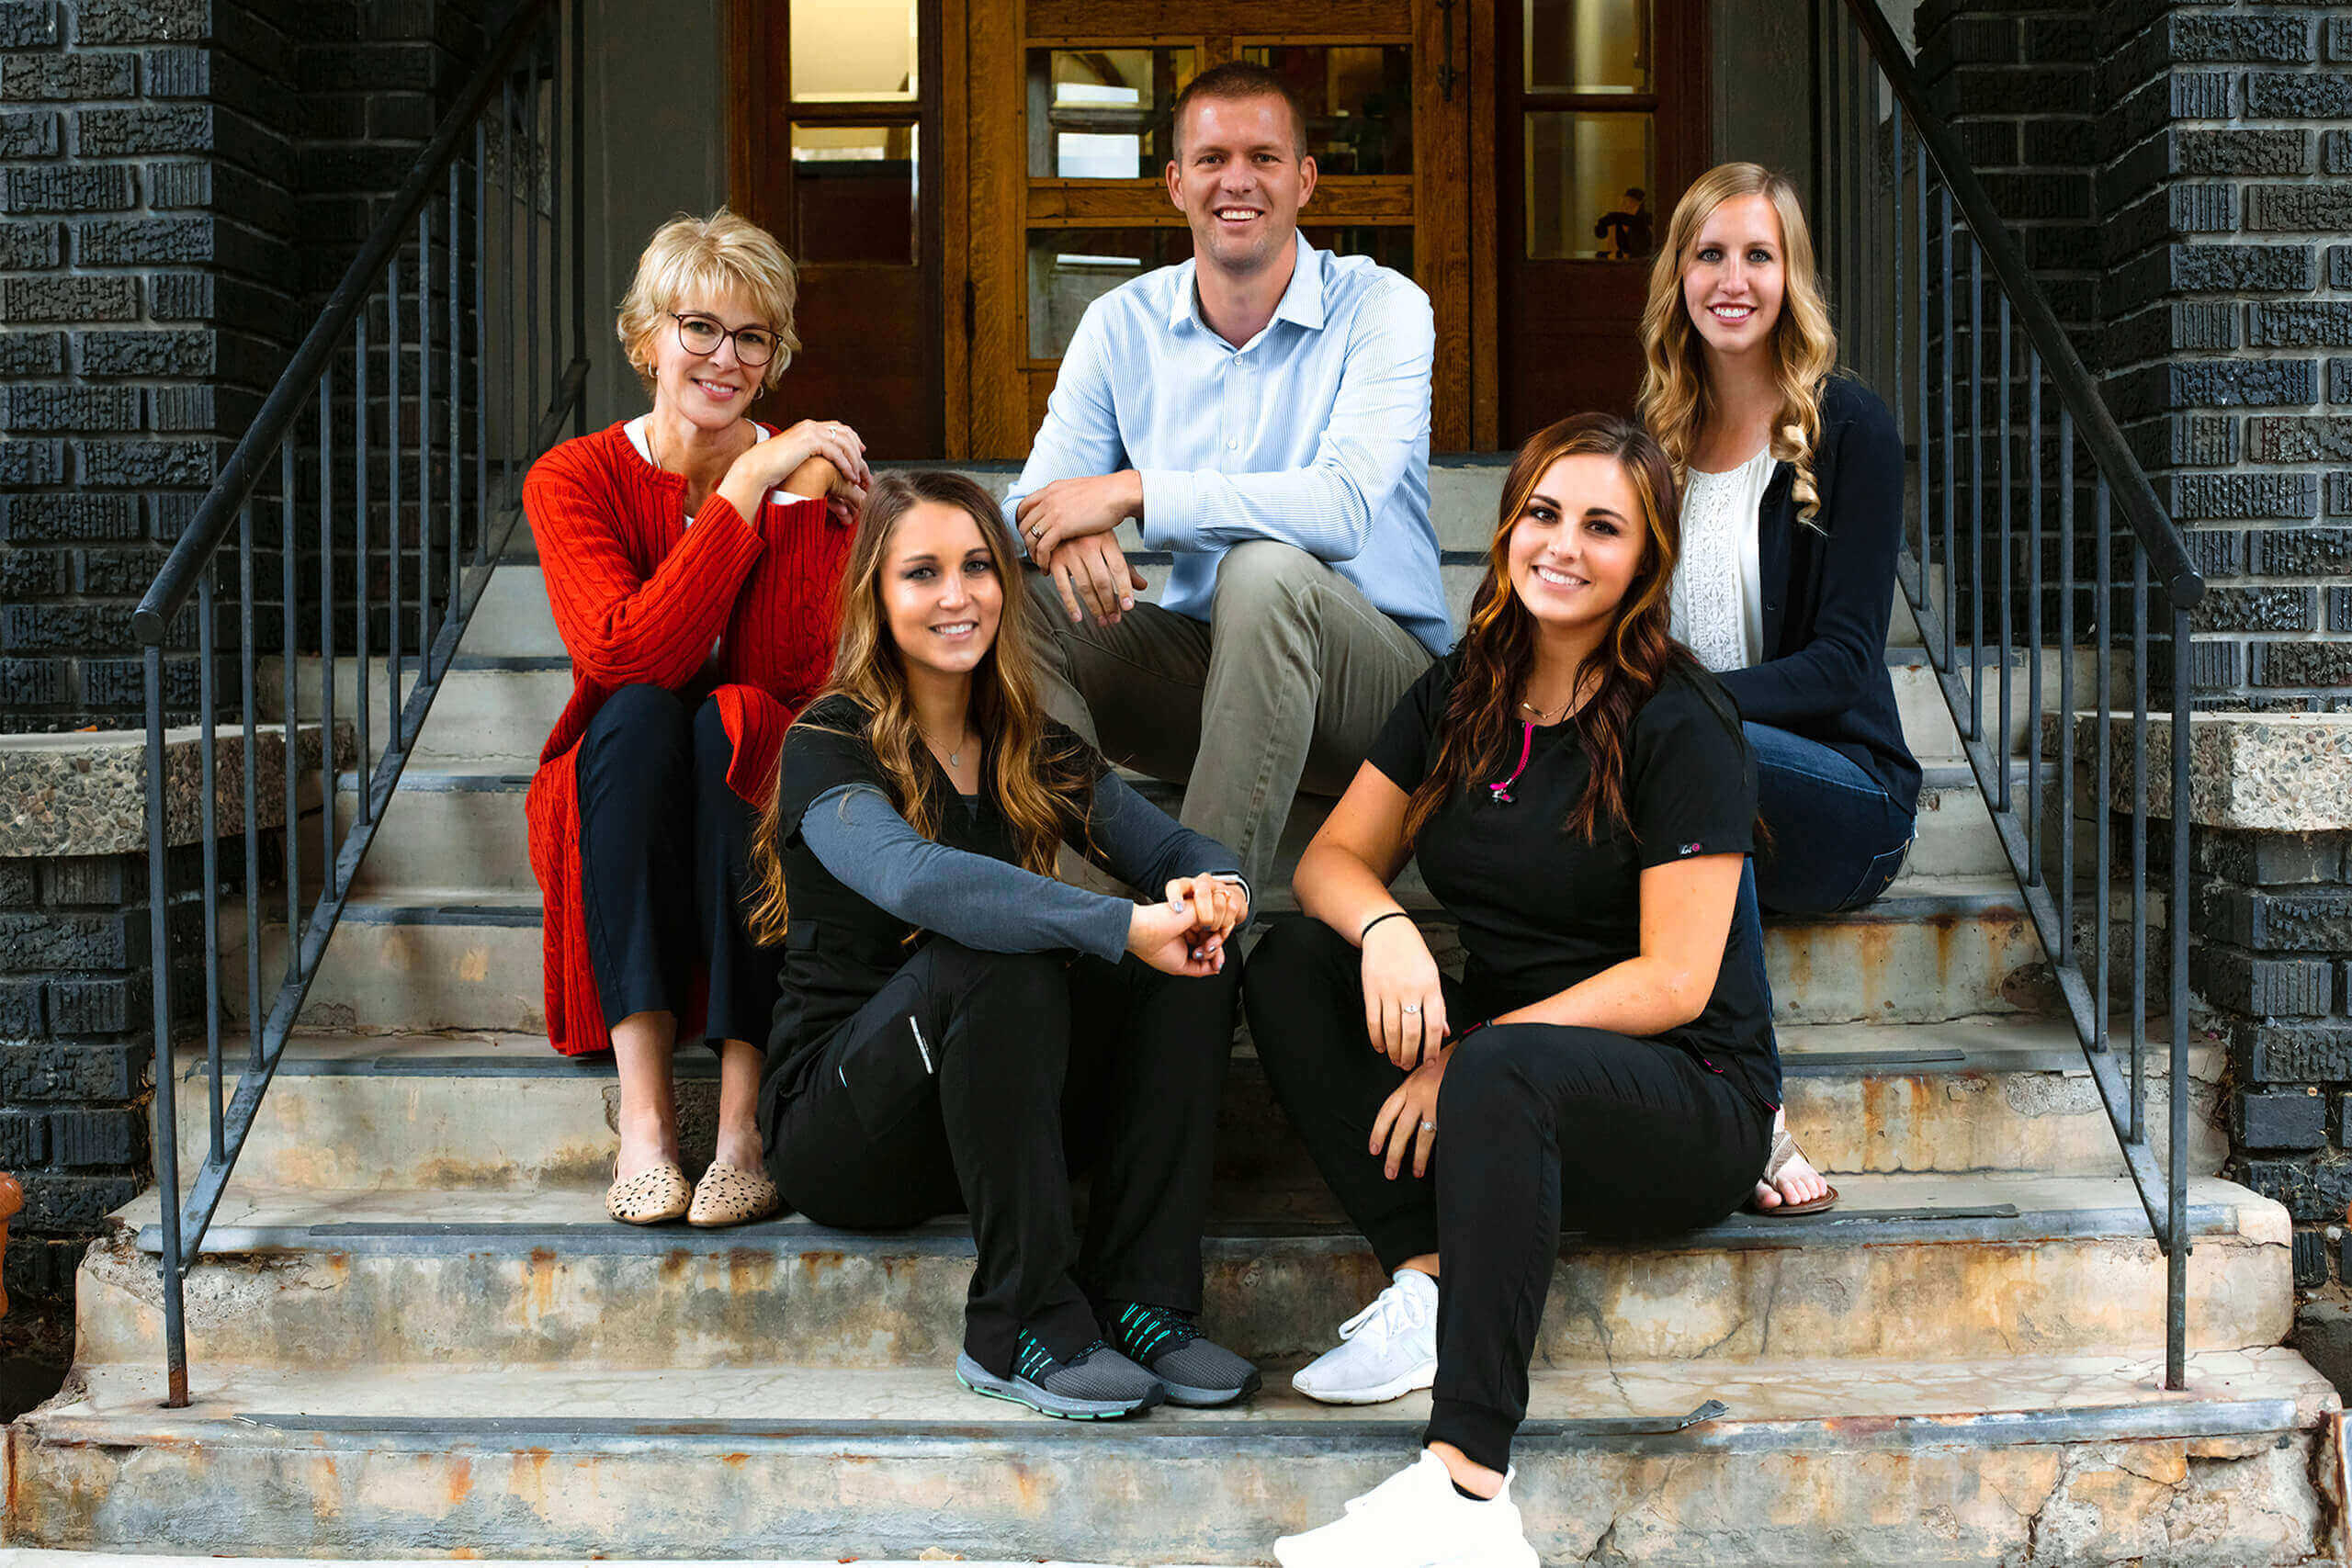 Dentist in Logan, Dr. Tanner Hunsaker and his dental team group photo at Midtown Dental in Logan, Utah